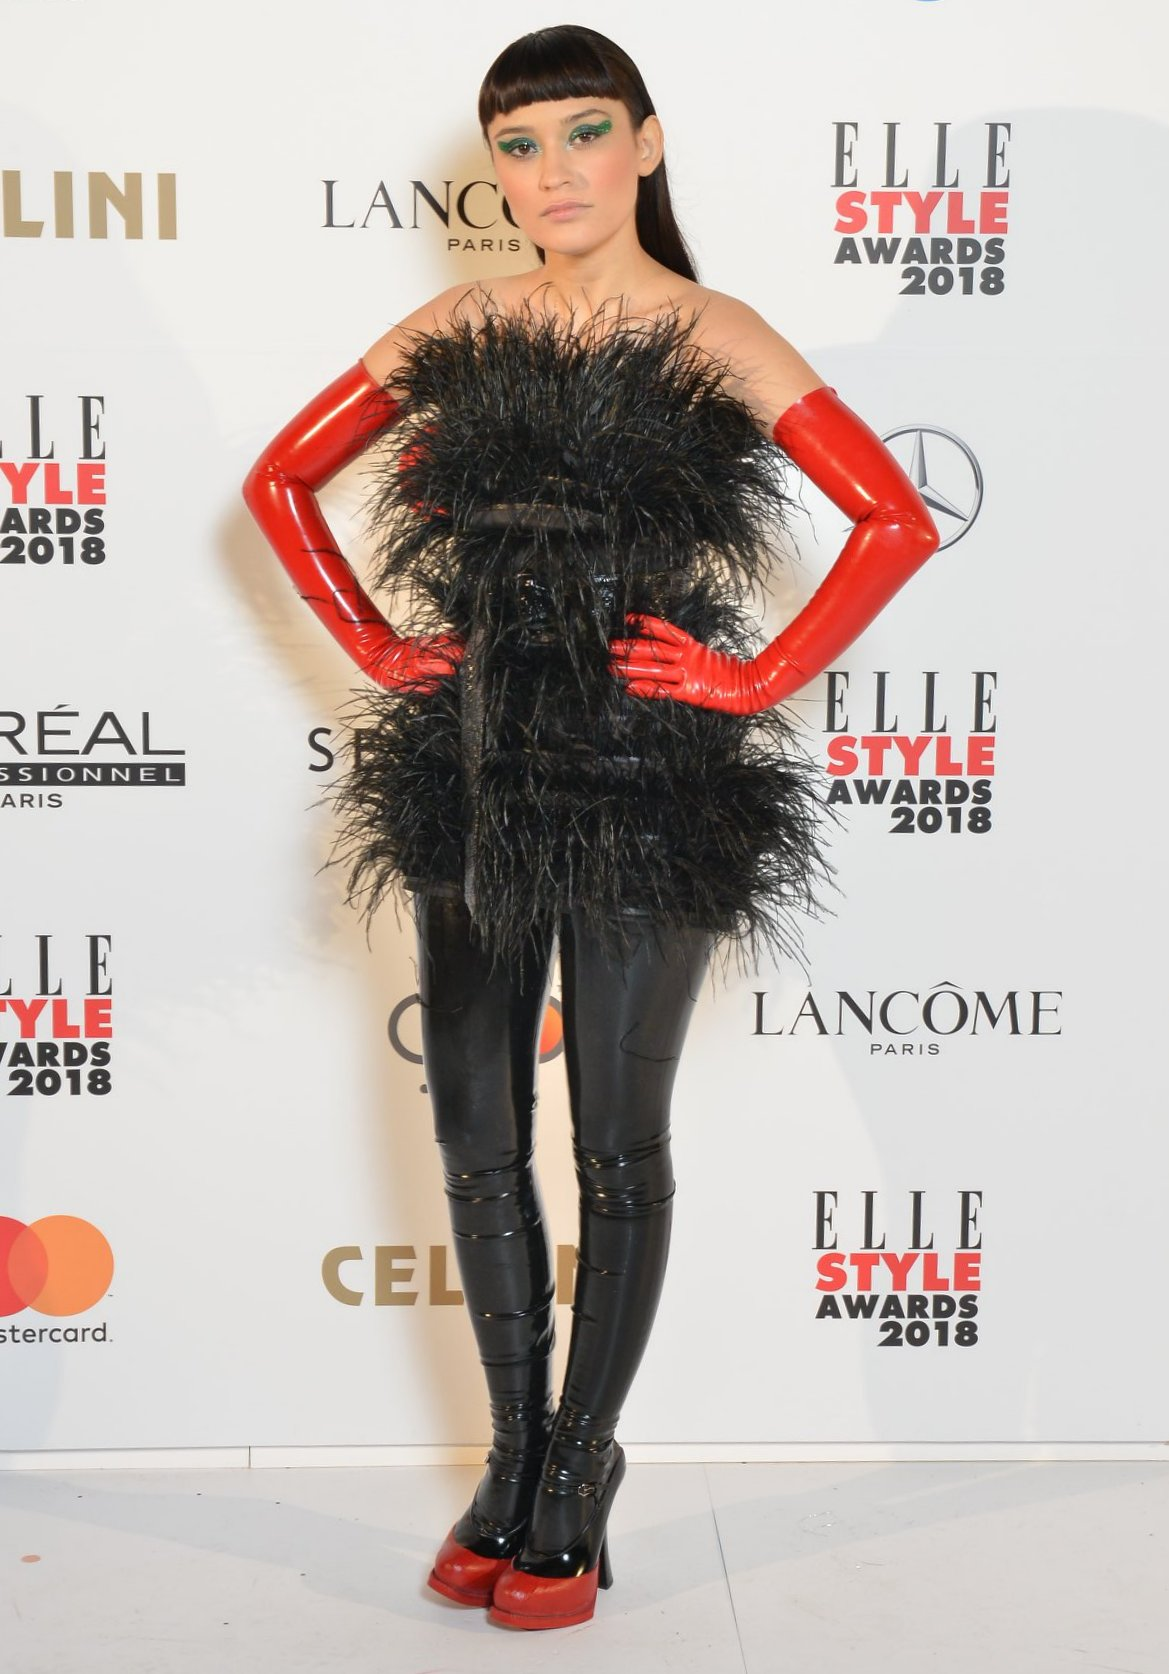 Irina Rimes absolutely fabulous in OMRA feathers dress at ELLE Style Awards